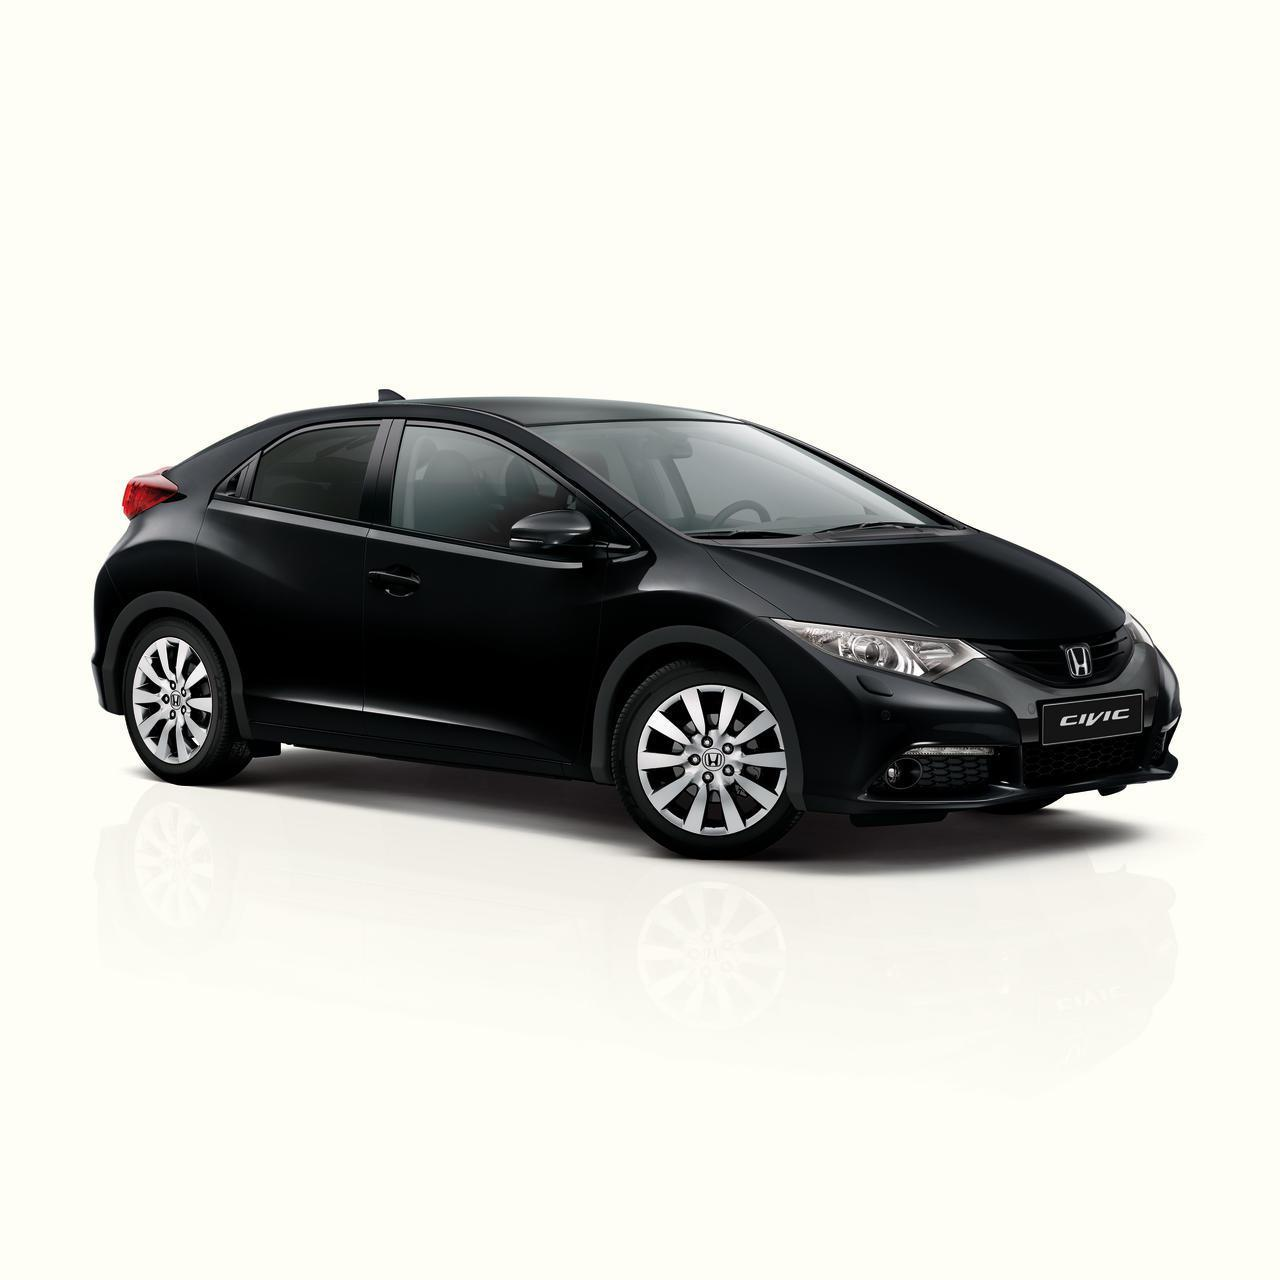 Foto de Honda Civic 2012 (51/153)